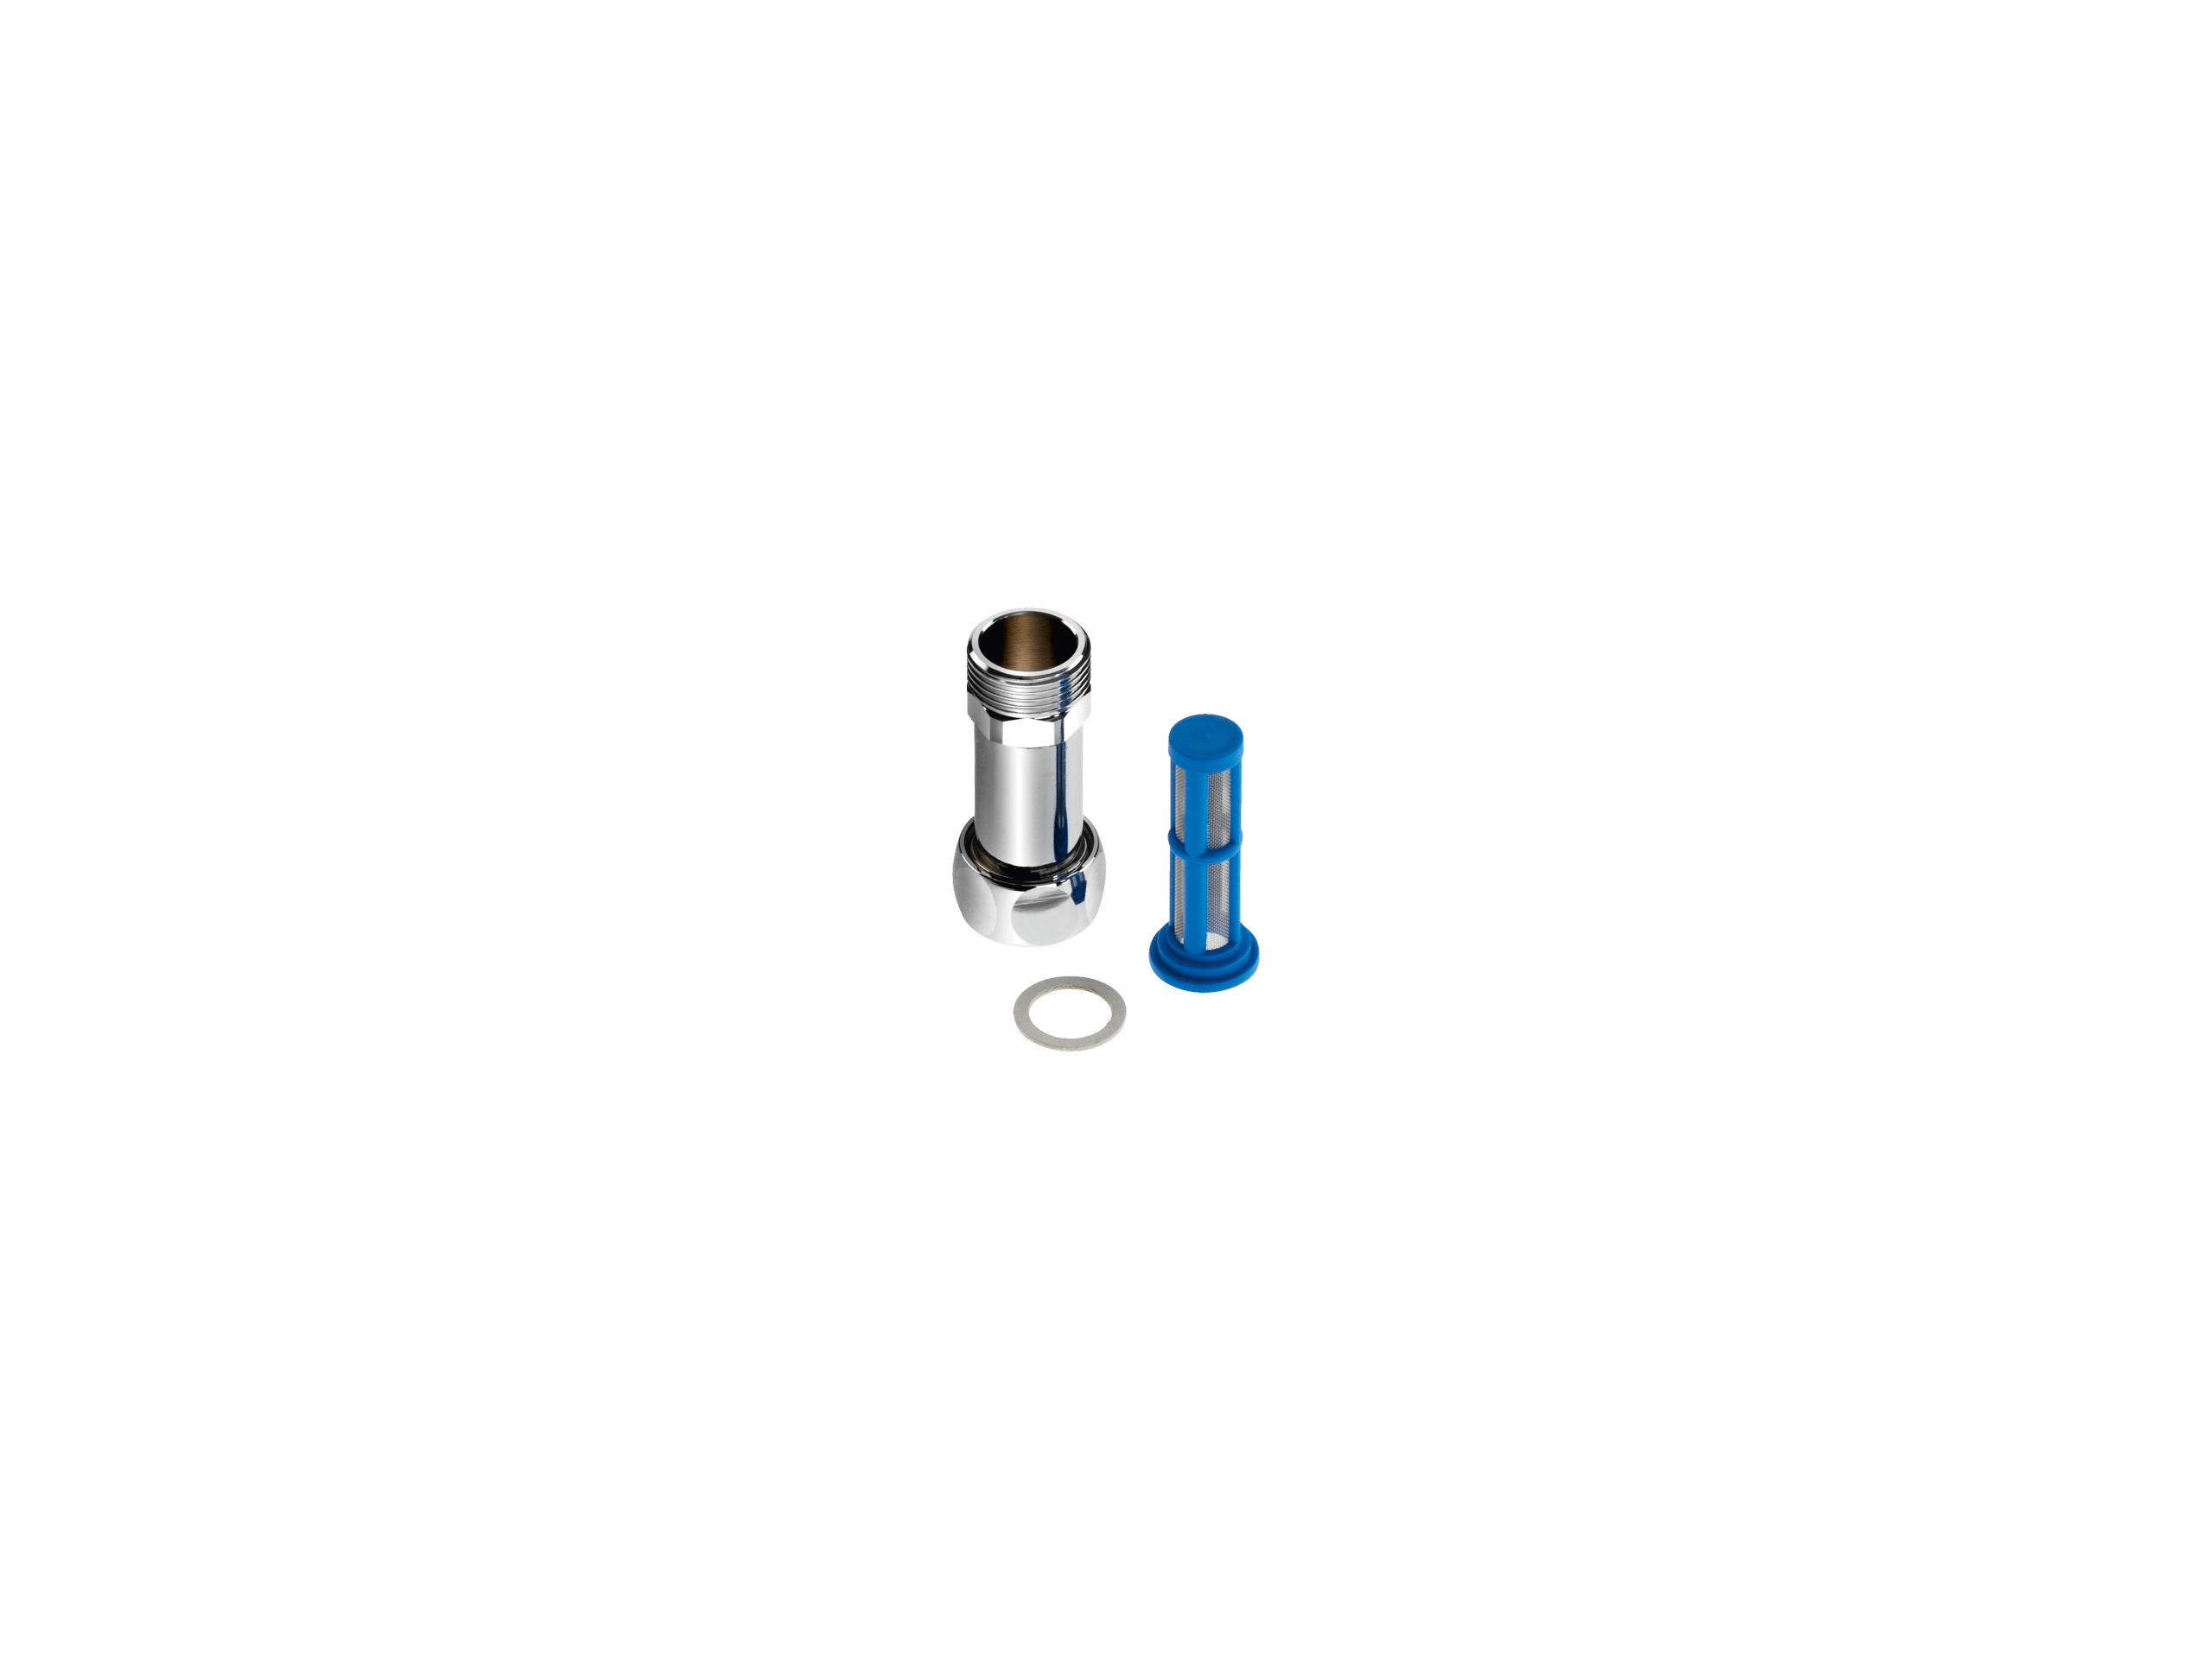 MieleFilter Filter Edst - Water Filter For Filtering Water Intake.